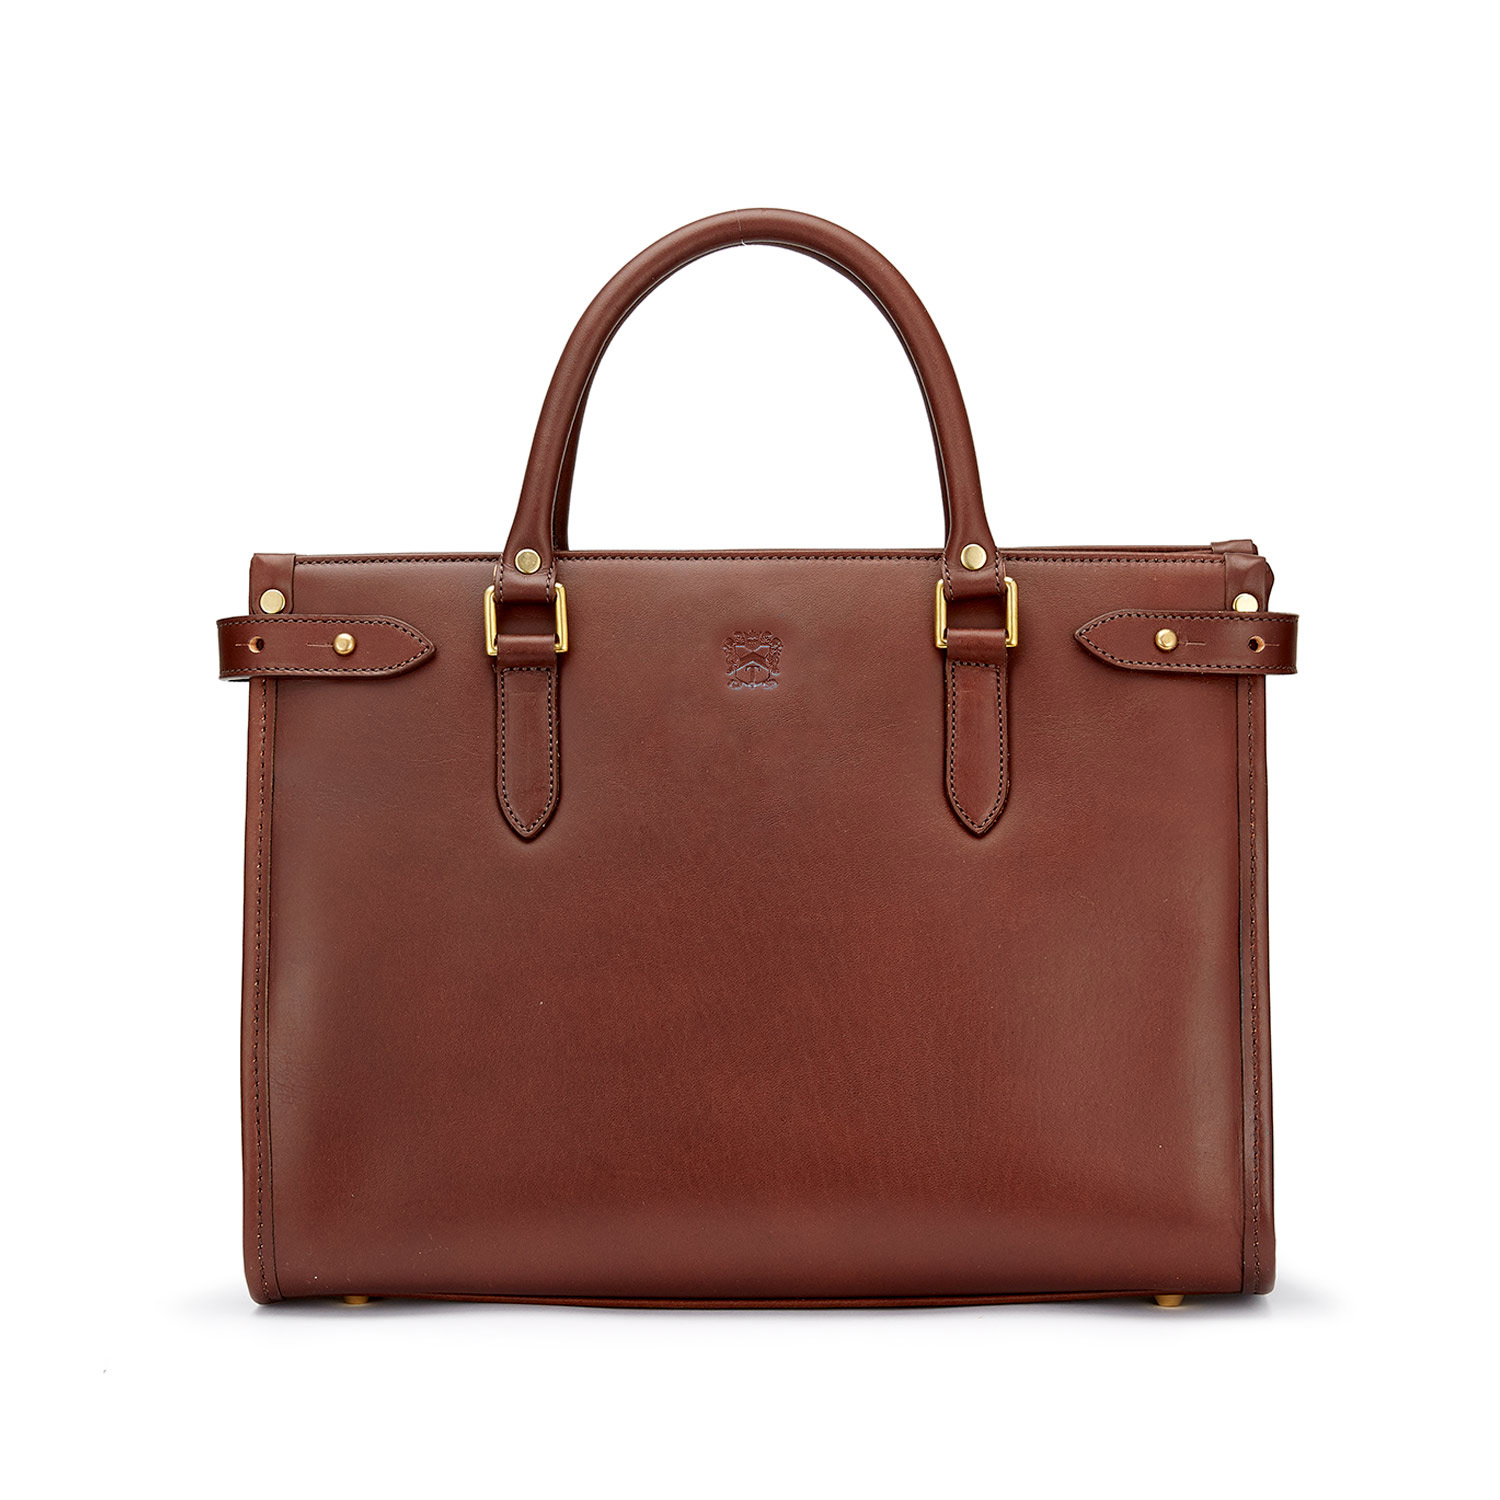 Tusting Kimbolton Leather Tote (small) in Chestnut Bridle Leather